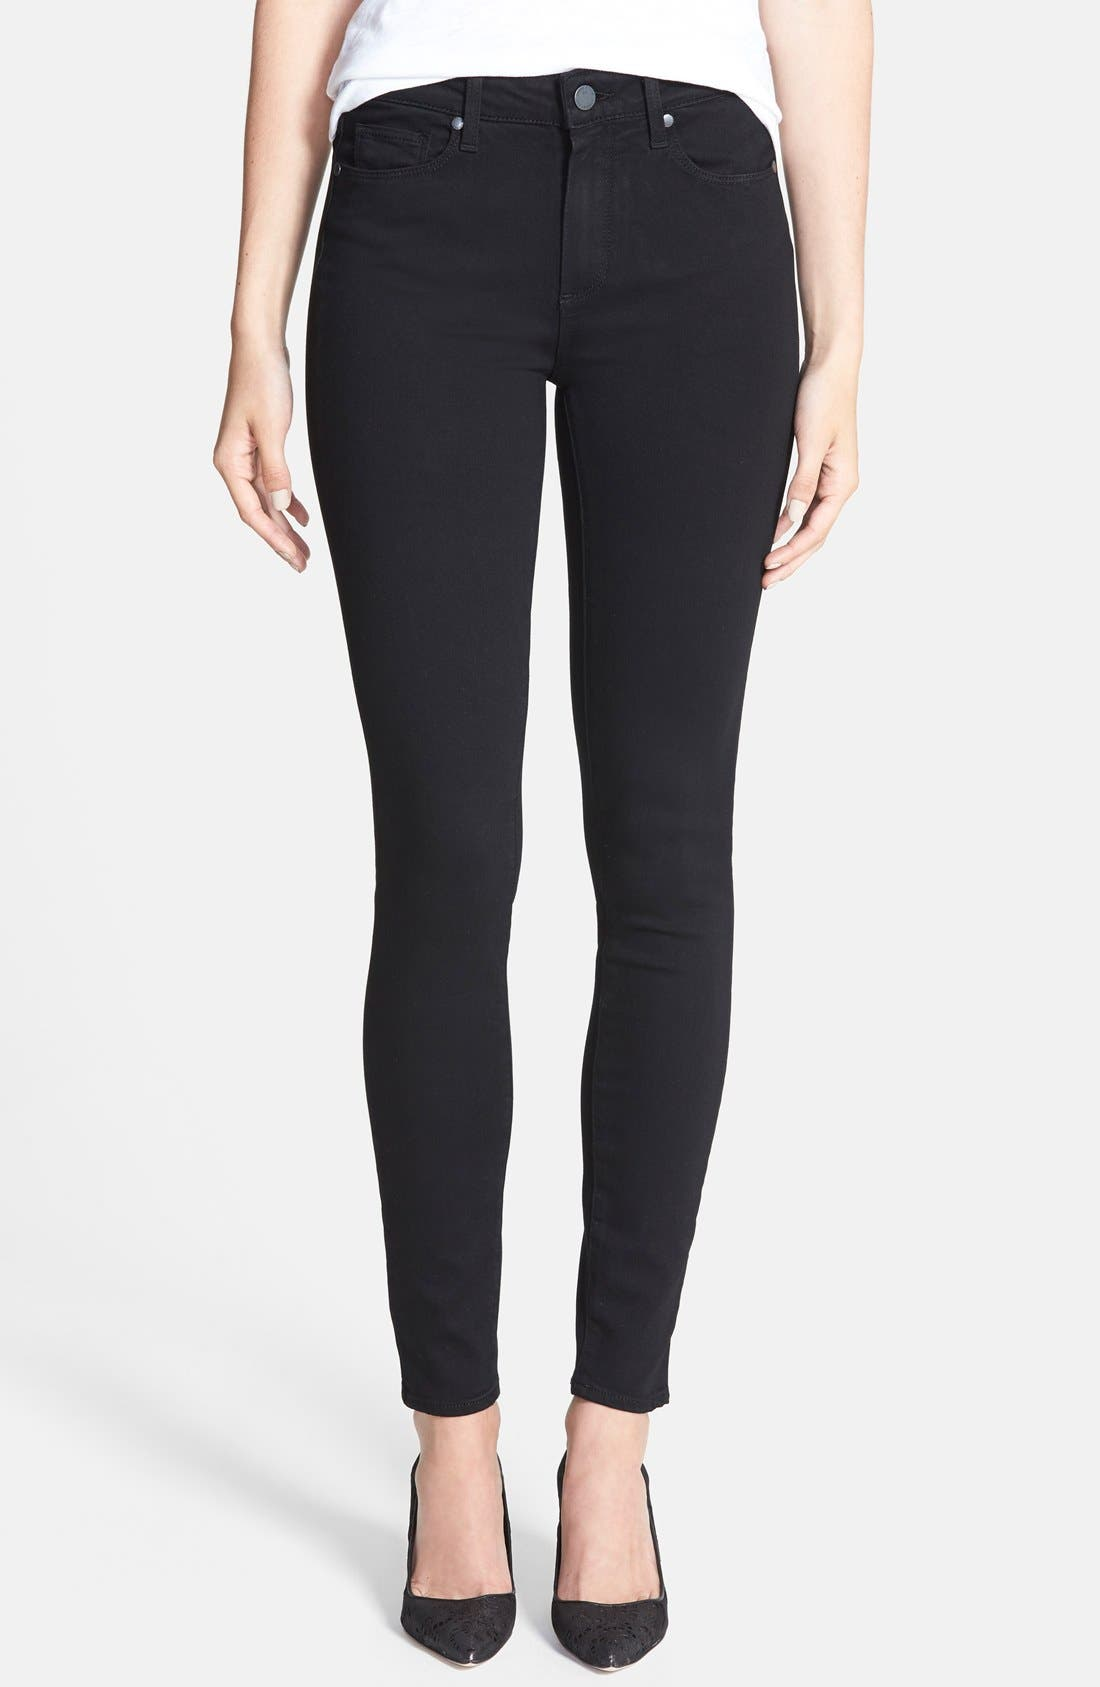 Alternate Image 1 Selected - PAIGE Transcend - Hoxton High Waist Ultra Skinny Stretch Jeans (Black Shadow)